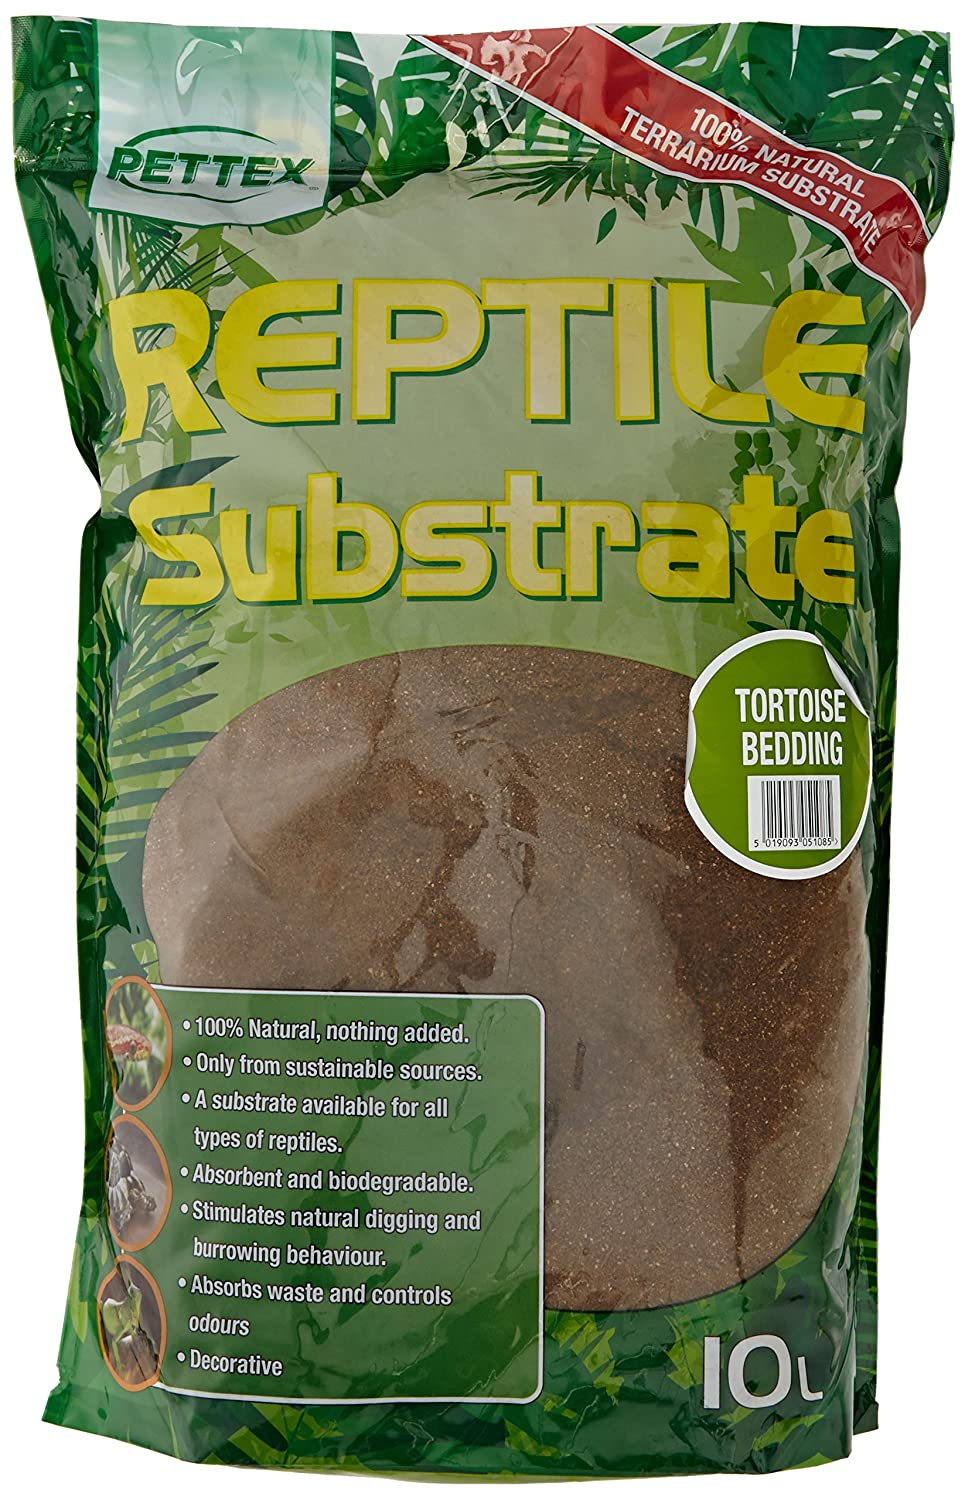 GroceryCentre 2 x Bags of Pettex Reptile Tortoise Bedding Substrate. Great for Mediterranean